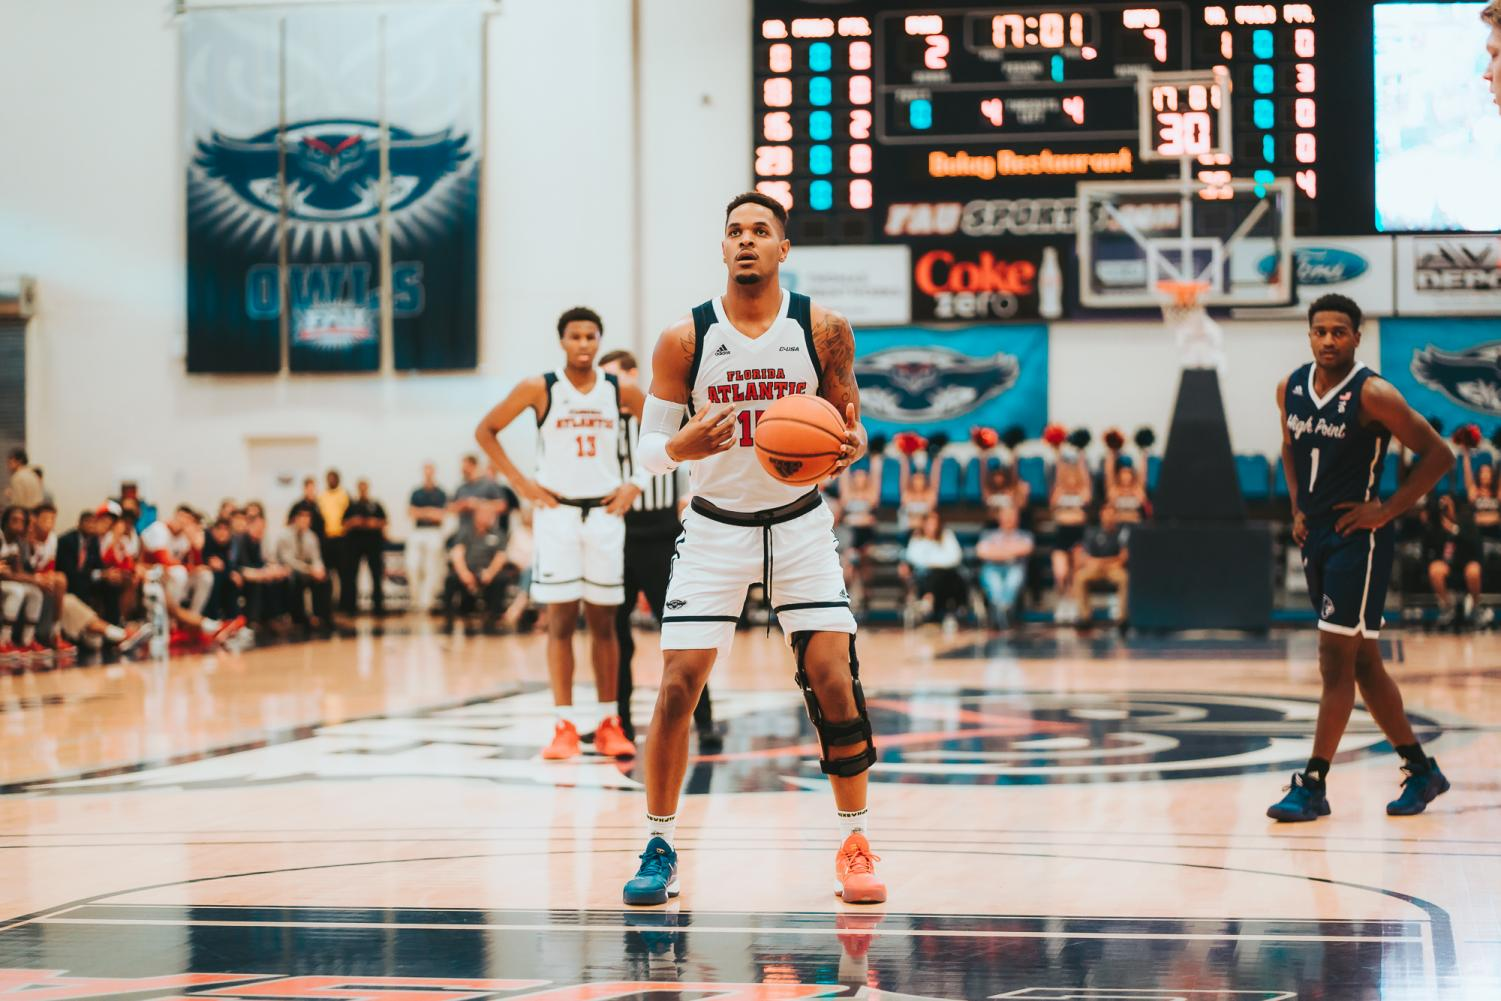 After an ACL injury last year that made Jailyn Ingram miss most of the season, he bounced back against High Point, scoring 19 points and collecting six rebounds. Photo by: Alex Liscio.